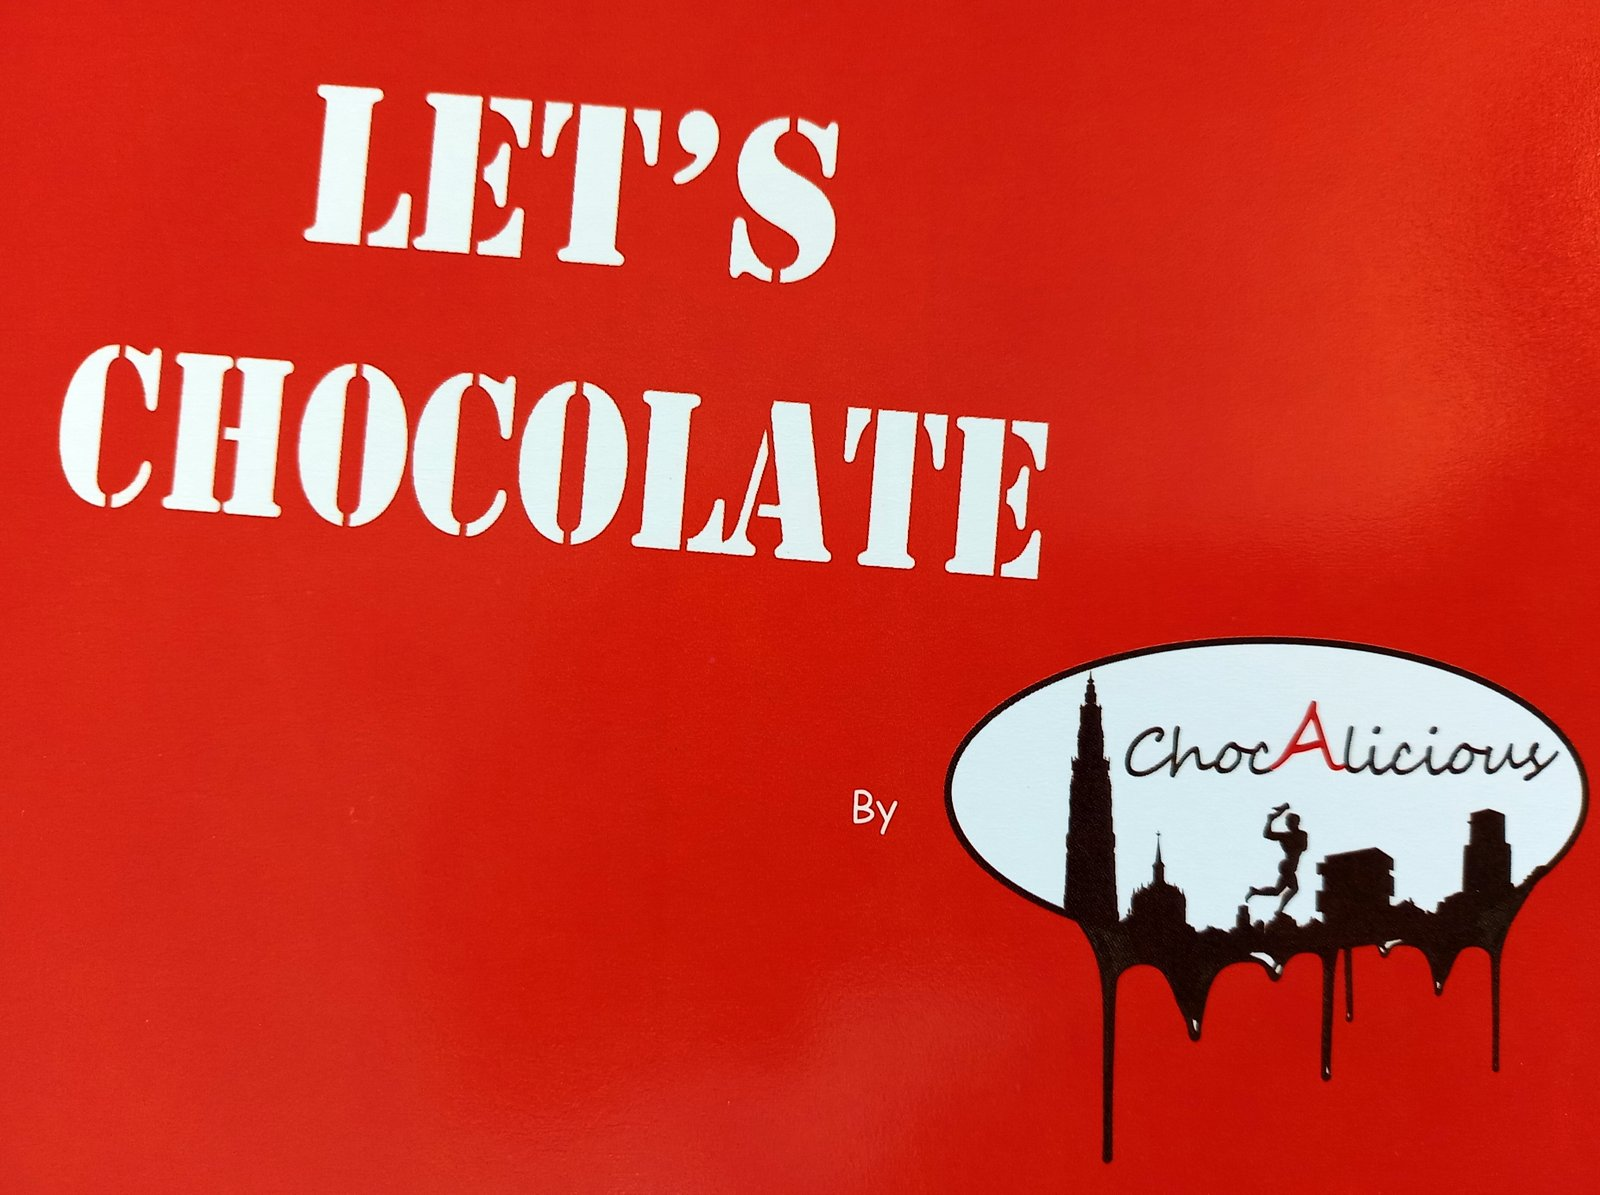 Lets Chocolate by Chocalicious